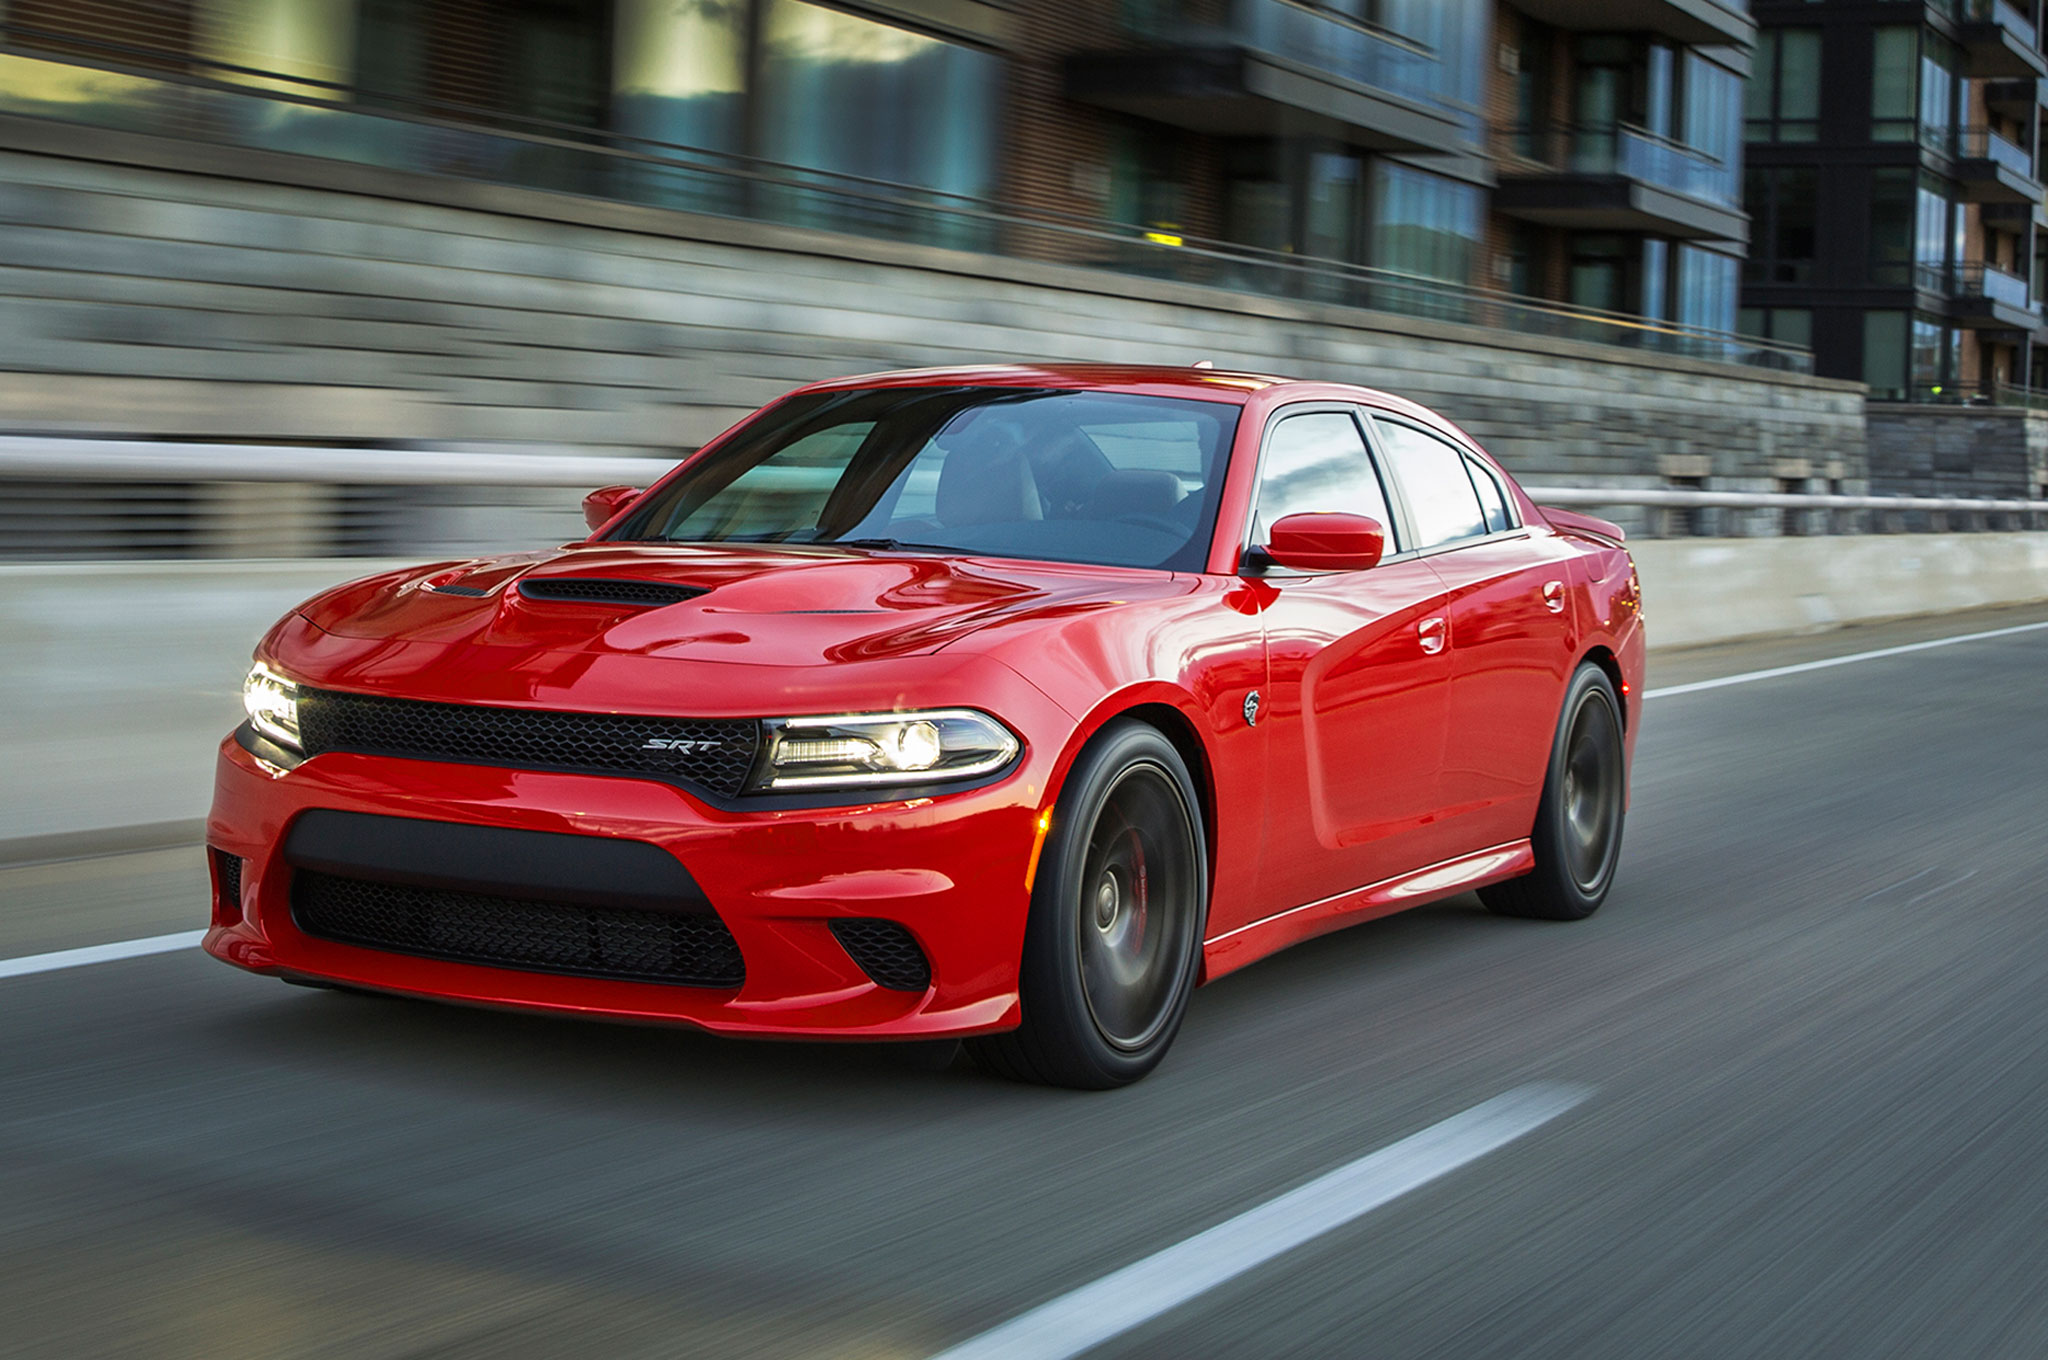 2015 Dodge Charger SRT Hellcat Front Three Quarter View In Motion 7